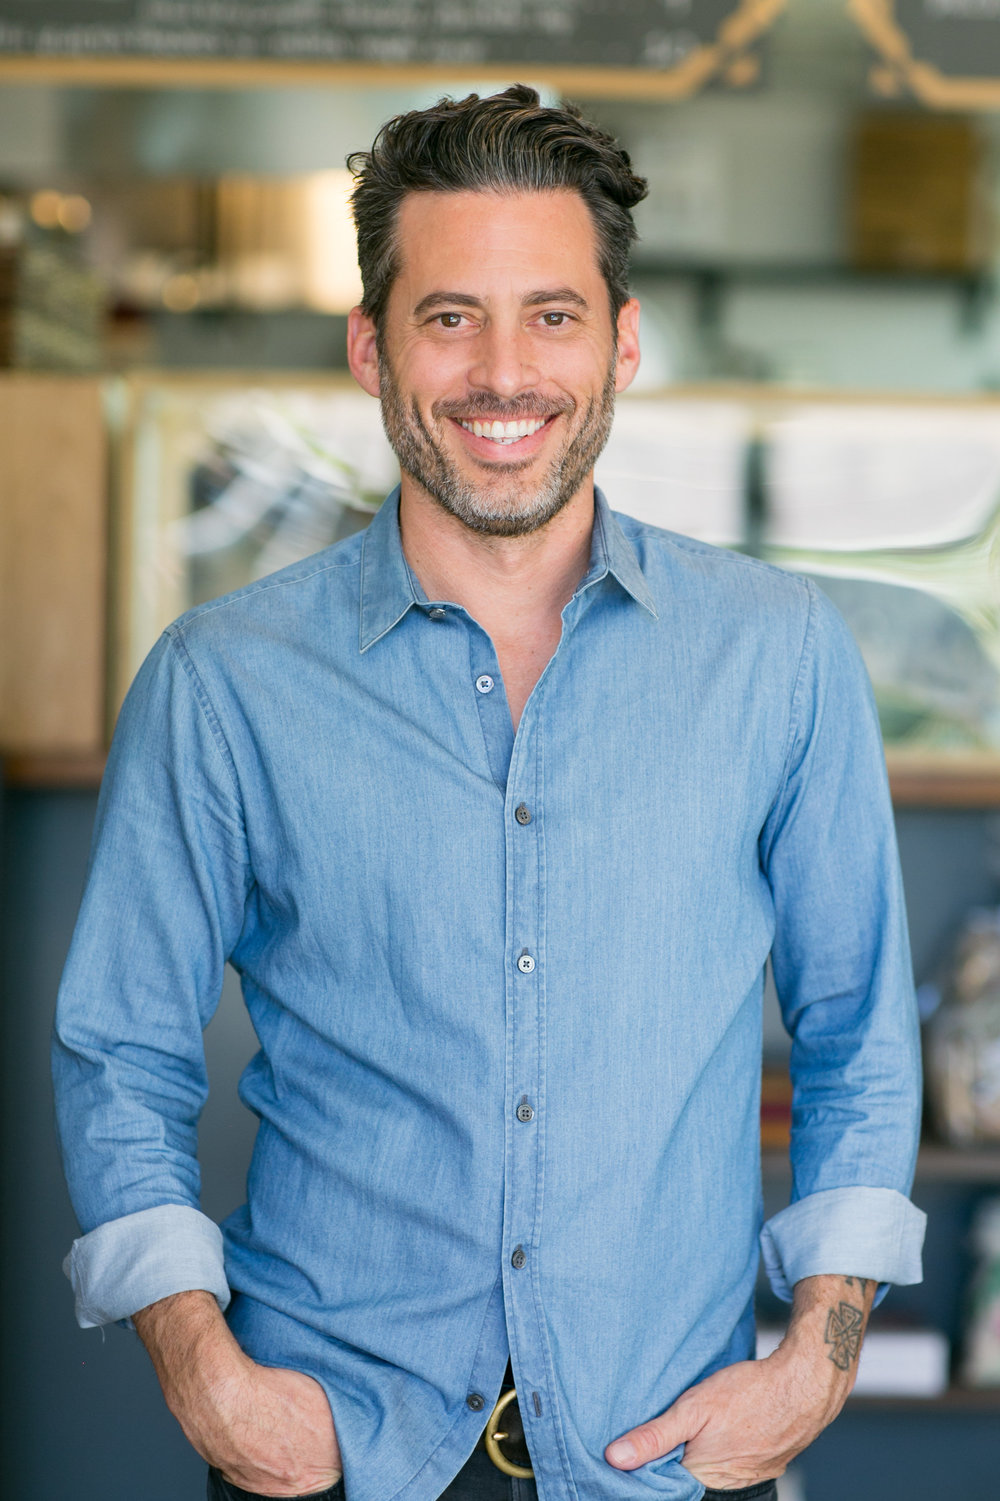 Mark LaValle - RESTAURATEUR & OWNER